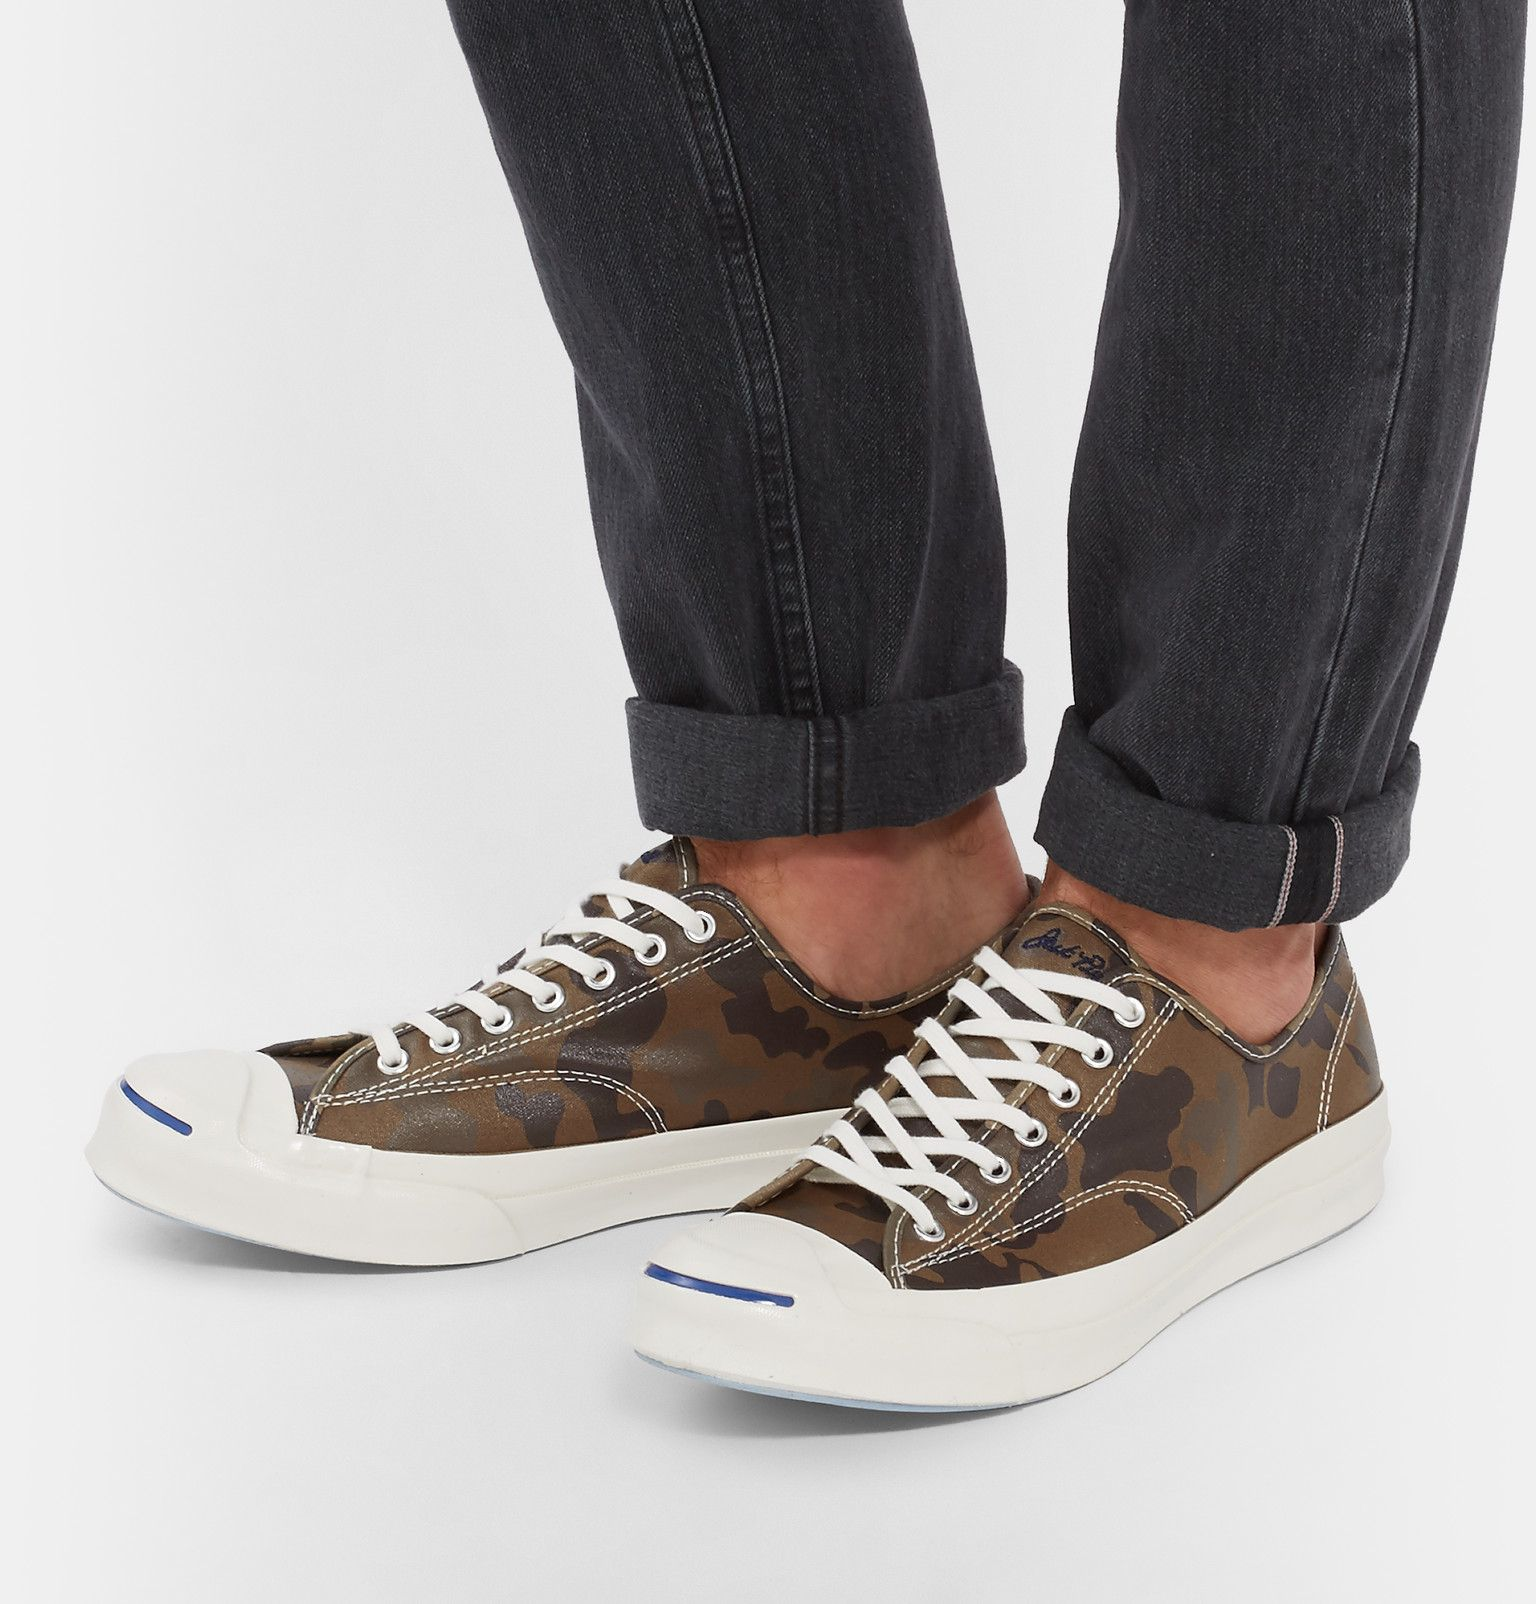 Converse Jack Purcell Signature Mens Brown